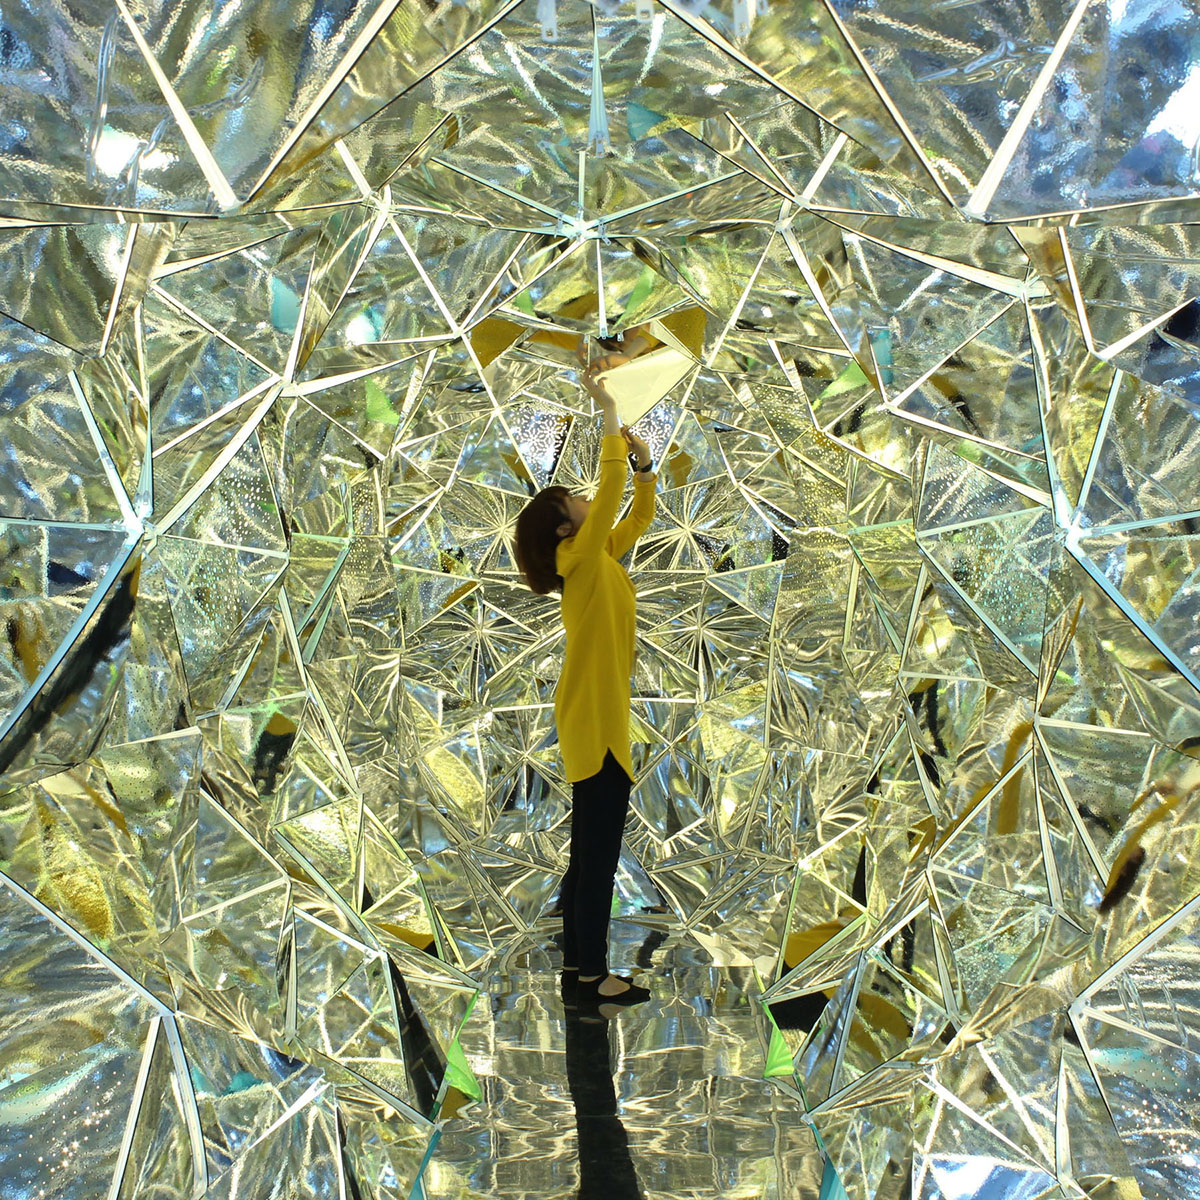 A Gigantic Kaleidoscope within a Shipping Container by Masakazu Shirane